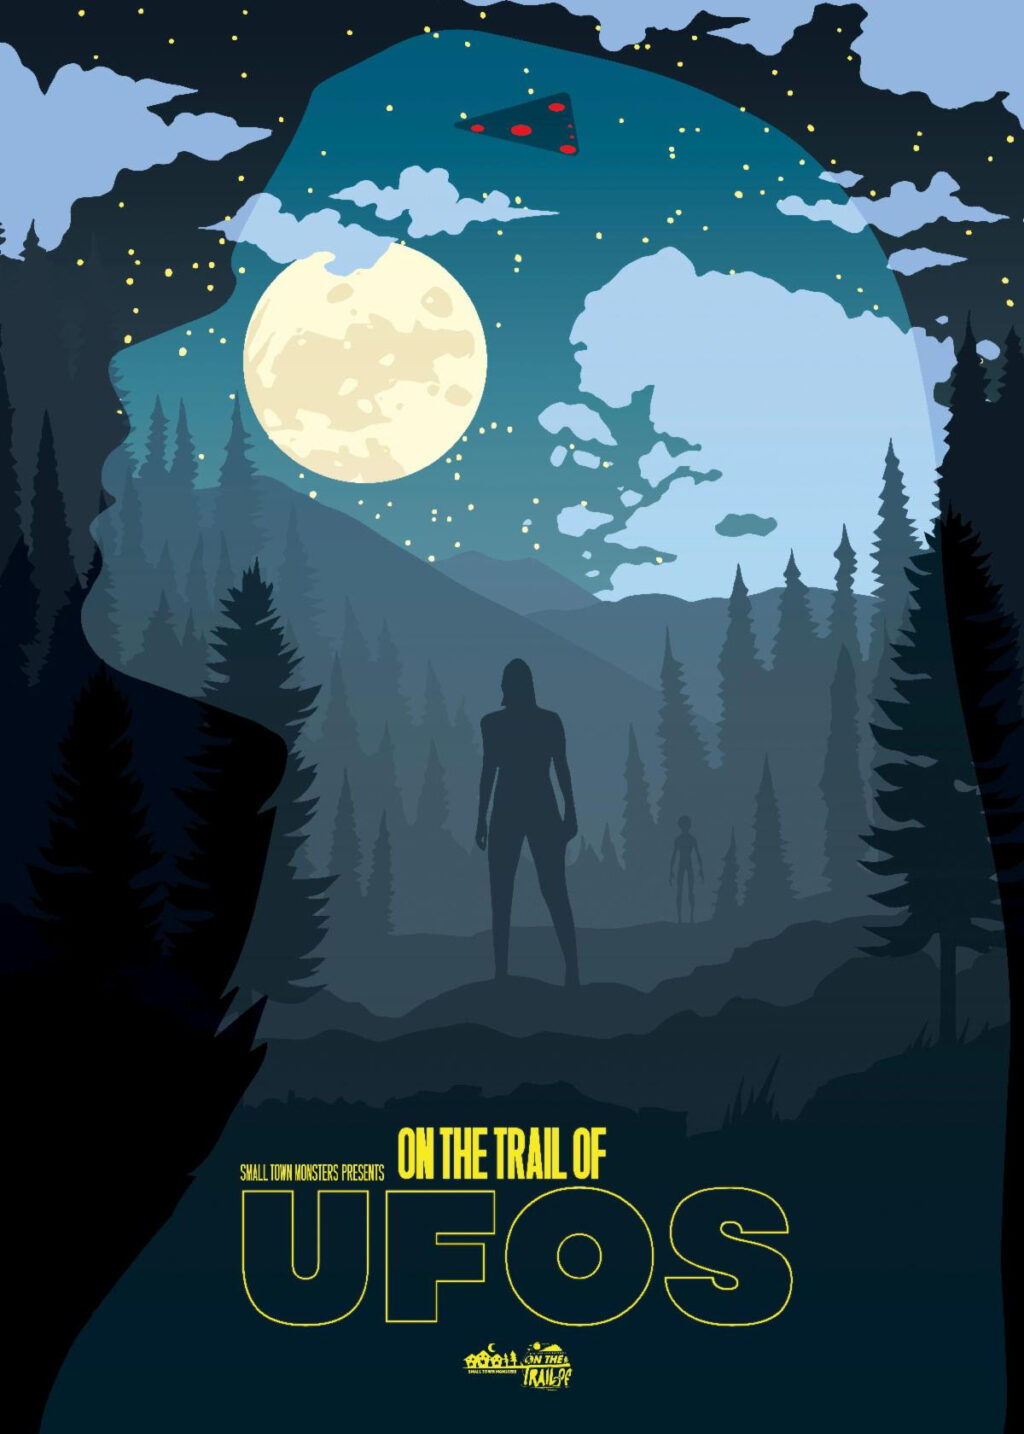 unnamed 1 2 1024x1434 - Trailer: Small Town Monsters Looks To the Stars in New Miniseries ON THE TRAIL OF UFOs